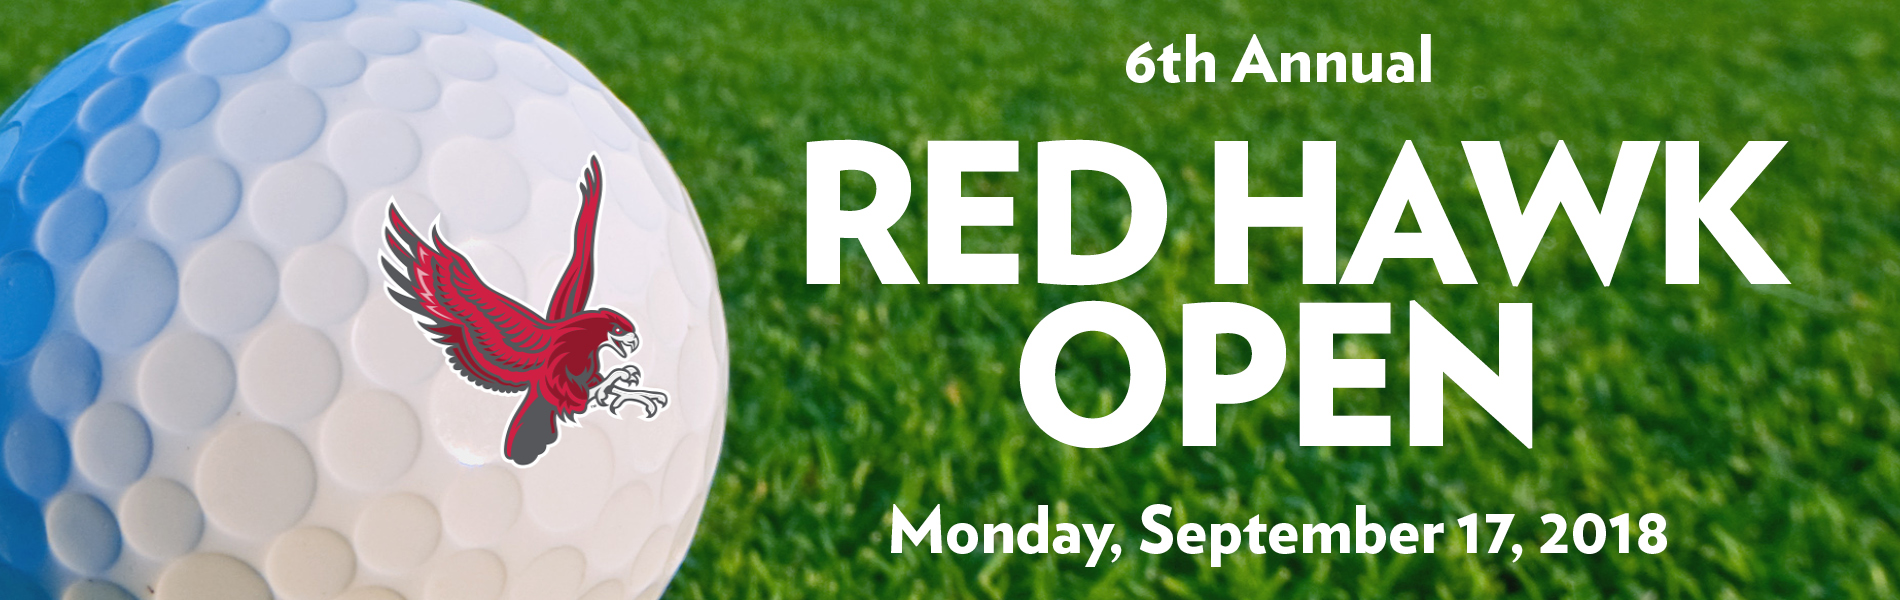 Register For The 2018 Red Hawk Open Montclair State University Versity R16 6th Annual